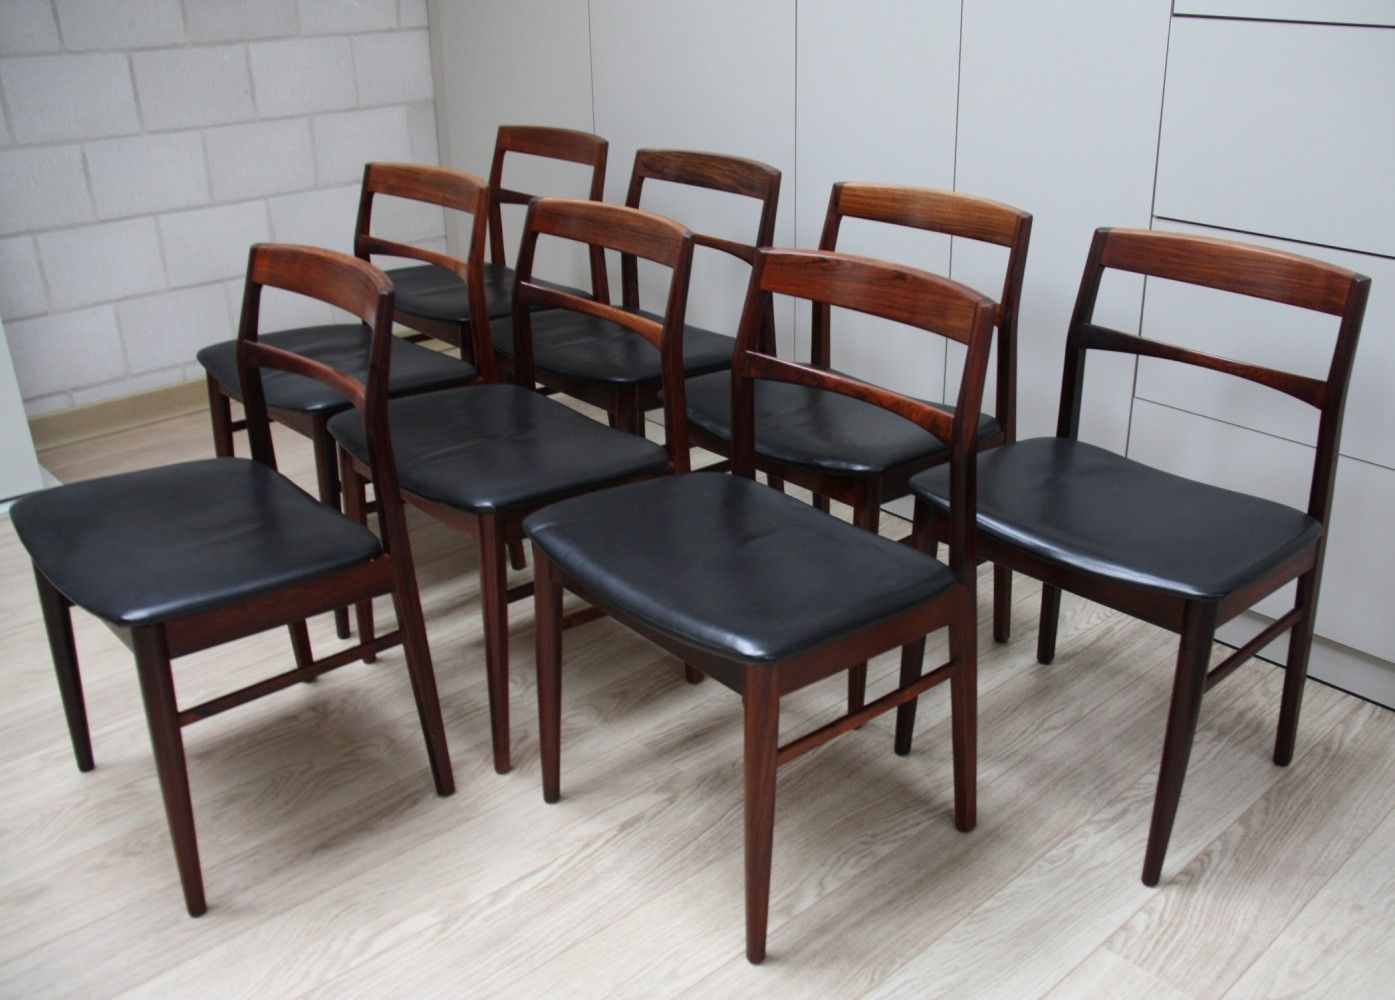 For Sale Set Of 8 Dining Chairs In Rosewood Black Leather By Vejle Stolefabrik Denmark 1960 S Dining Chairs Chair Dining Room Chairs Modern Set of 8 dining chairs